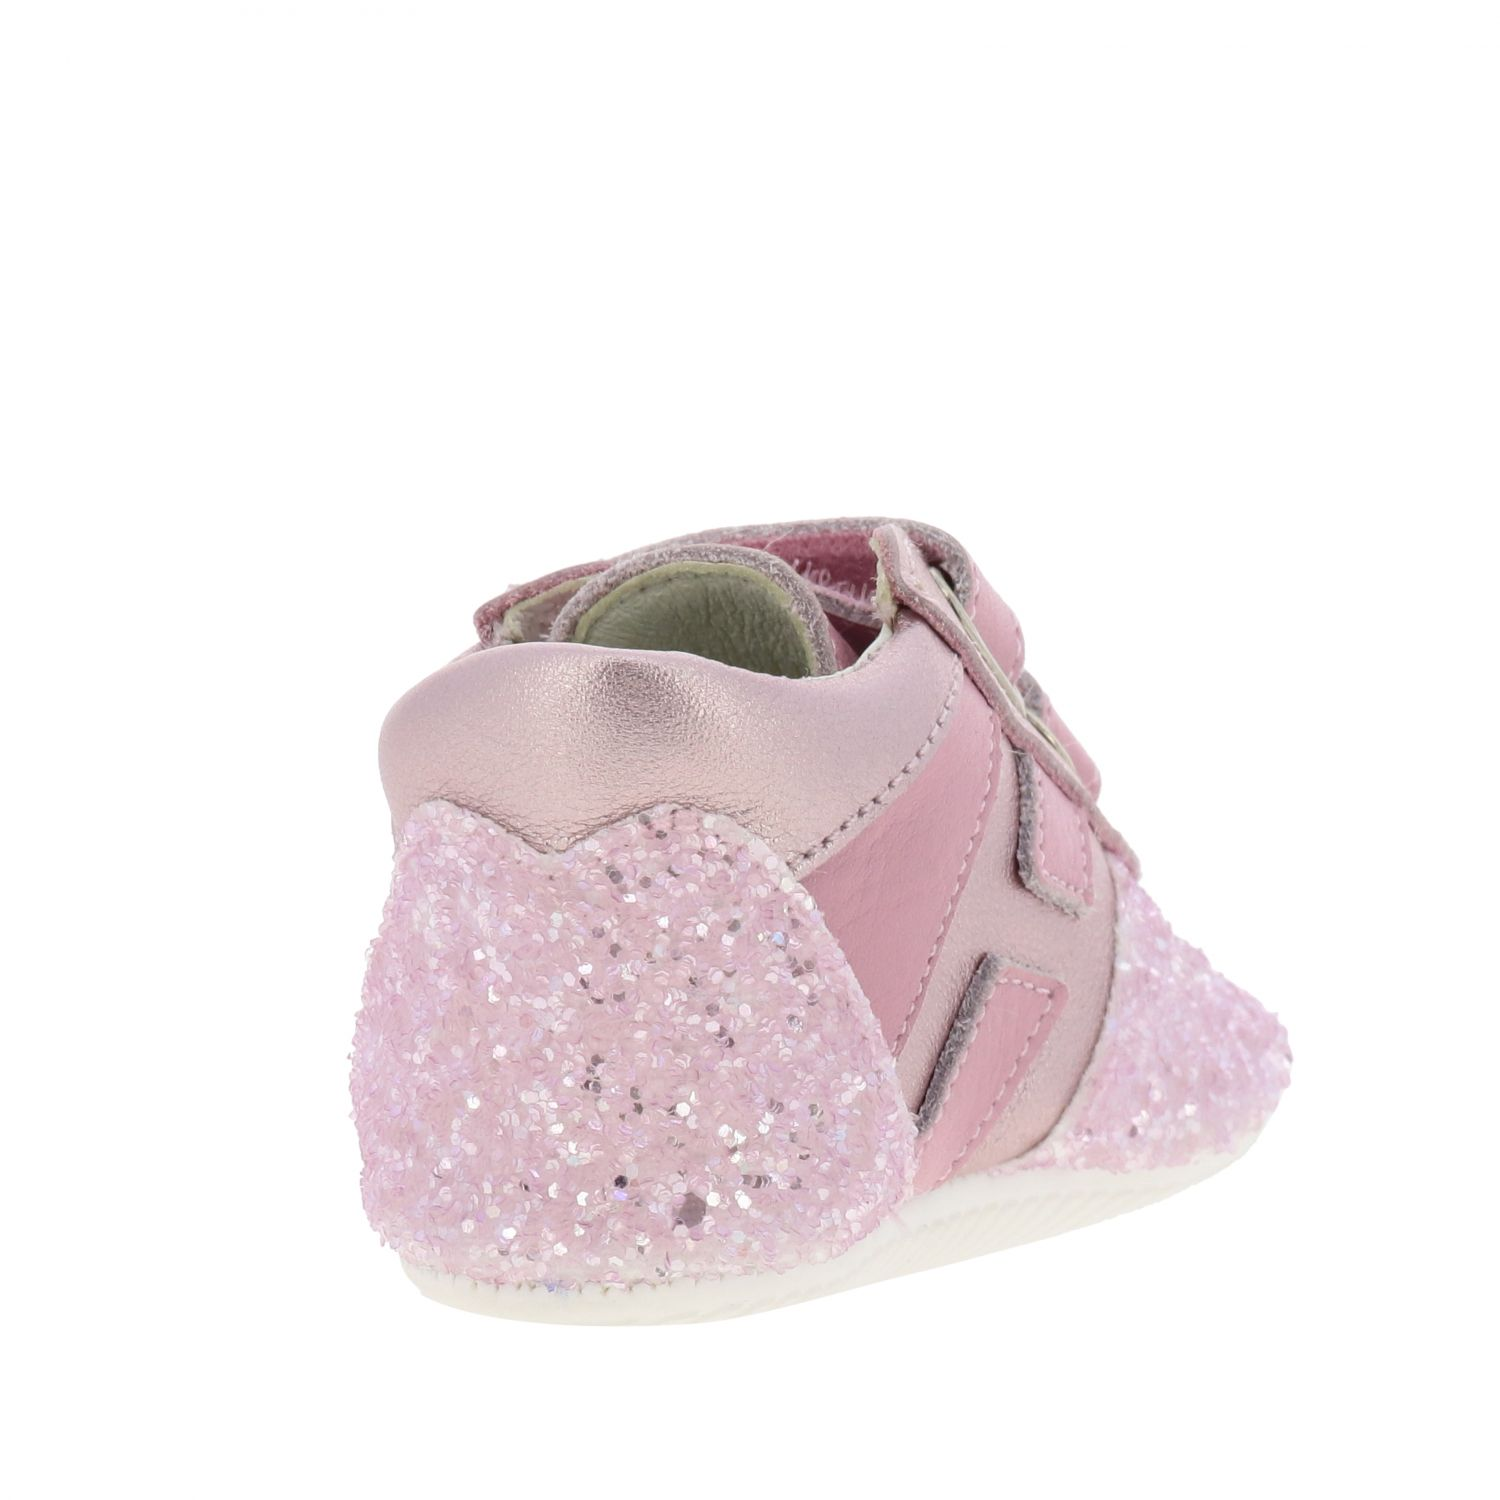 Olympia Hogan laminated leather and glitter sneakers with Velcro straps pink 5